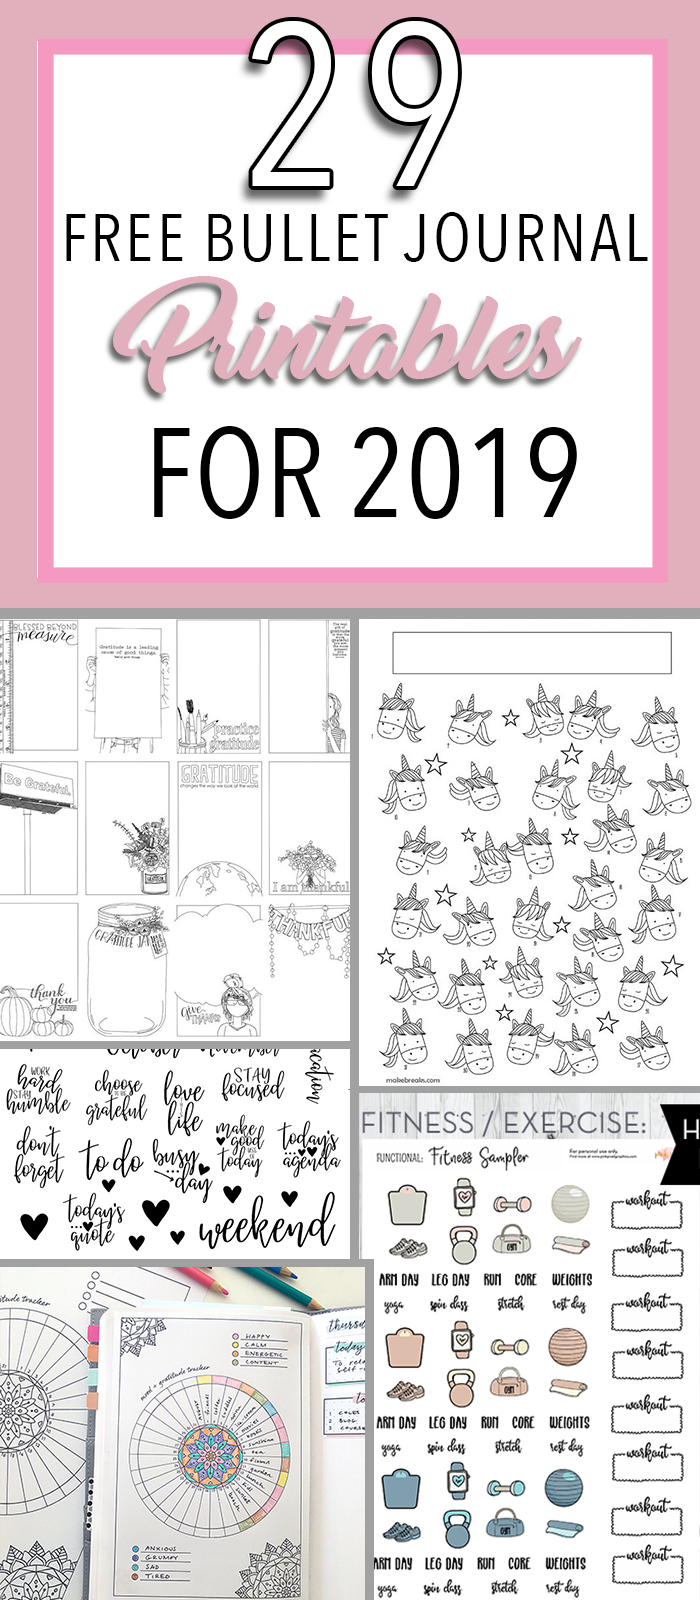 29 Free Bullet Journal Printables To Snag For 2019 | The Petite - Free Bullet Journal Printables 2019